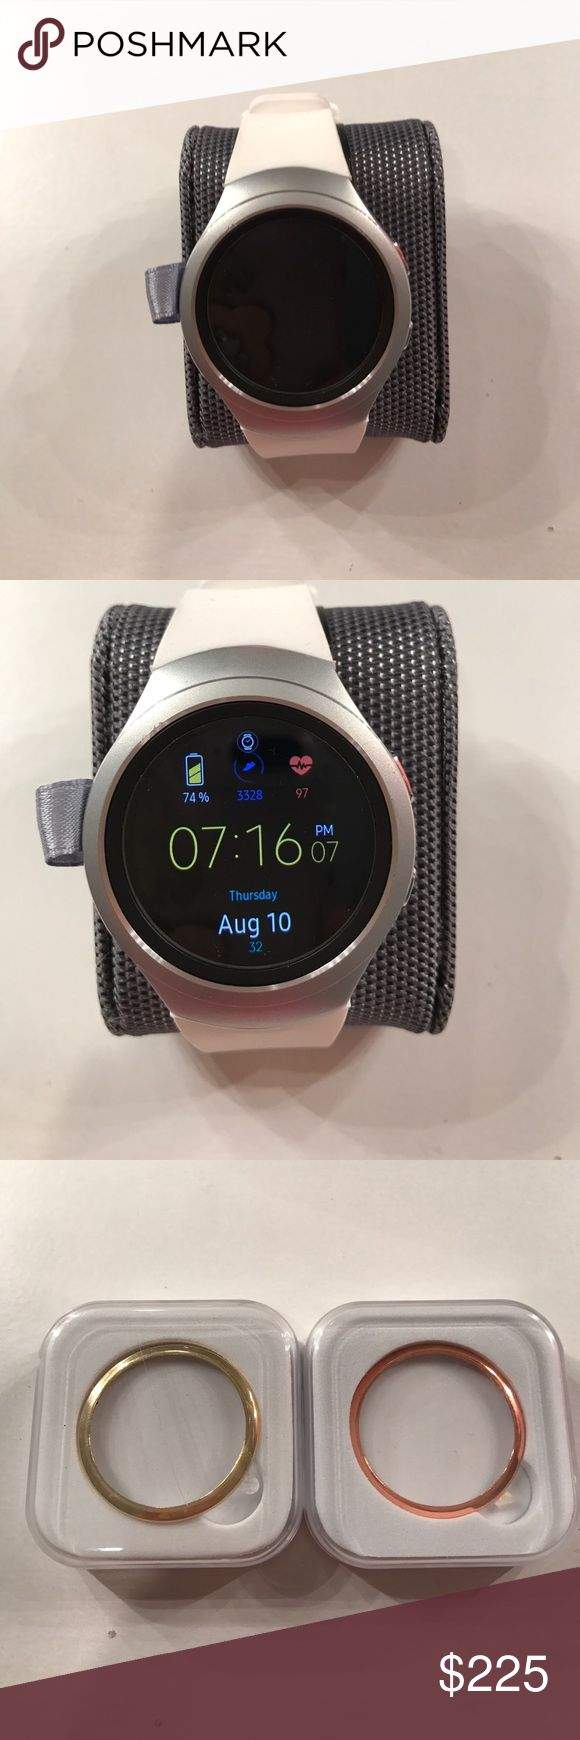 Samsung Gear s2 smart watch Stand alone Samsung Gear s2 watch. Receive calls, texts, emails, track fitness, heart monitor, and more. Like new, great condition. Priced to sell only $200.00 OBO all this included. Samsung Accessories Watches